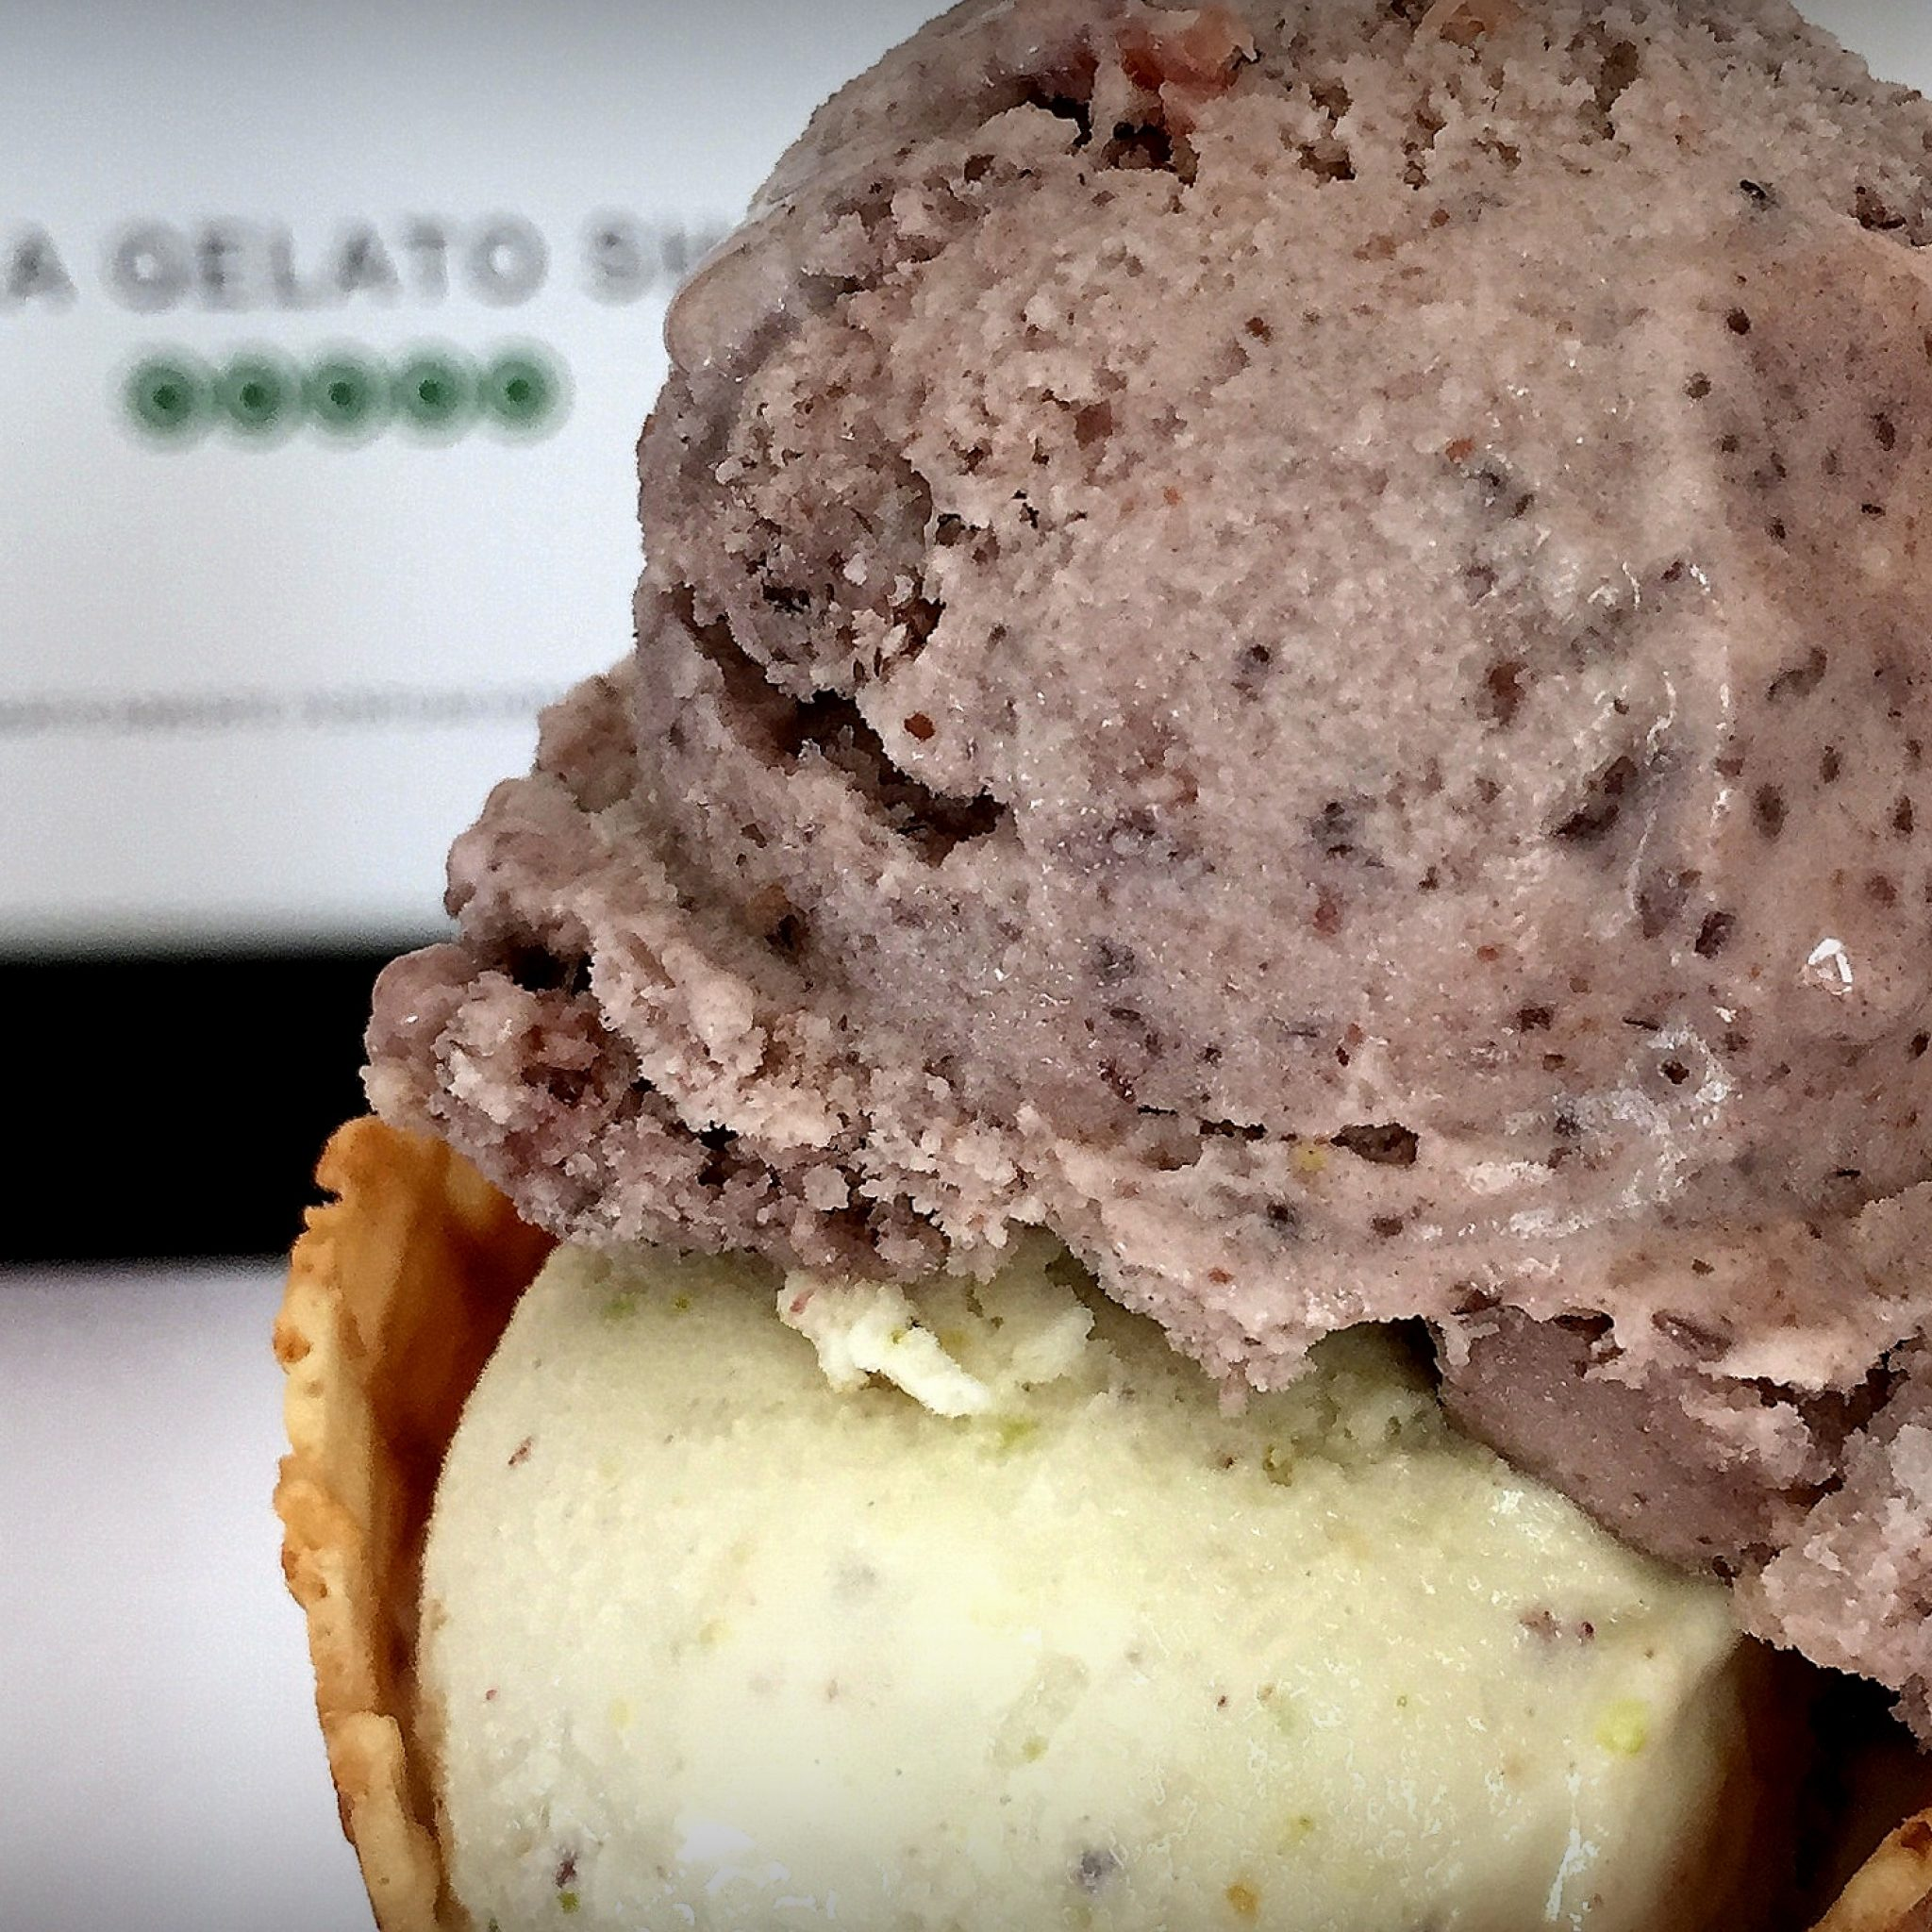 Frijol con puerco—a flavour so typical of the area it made its way into gelato.